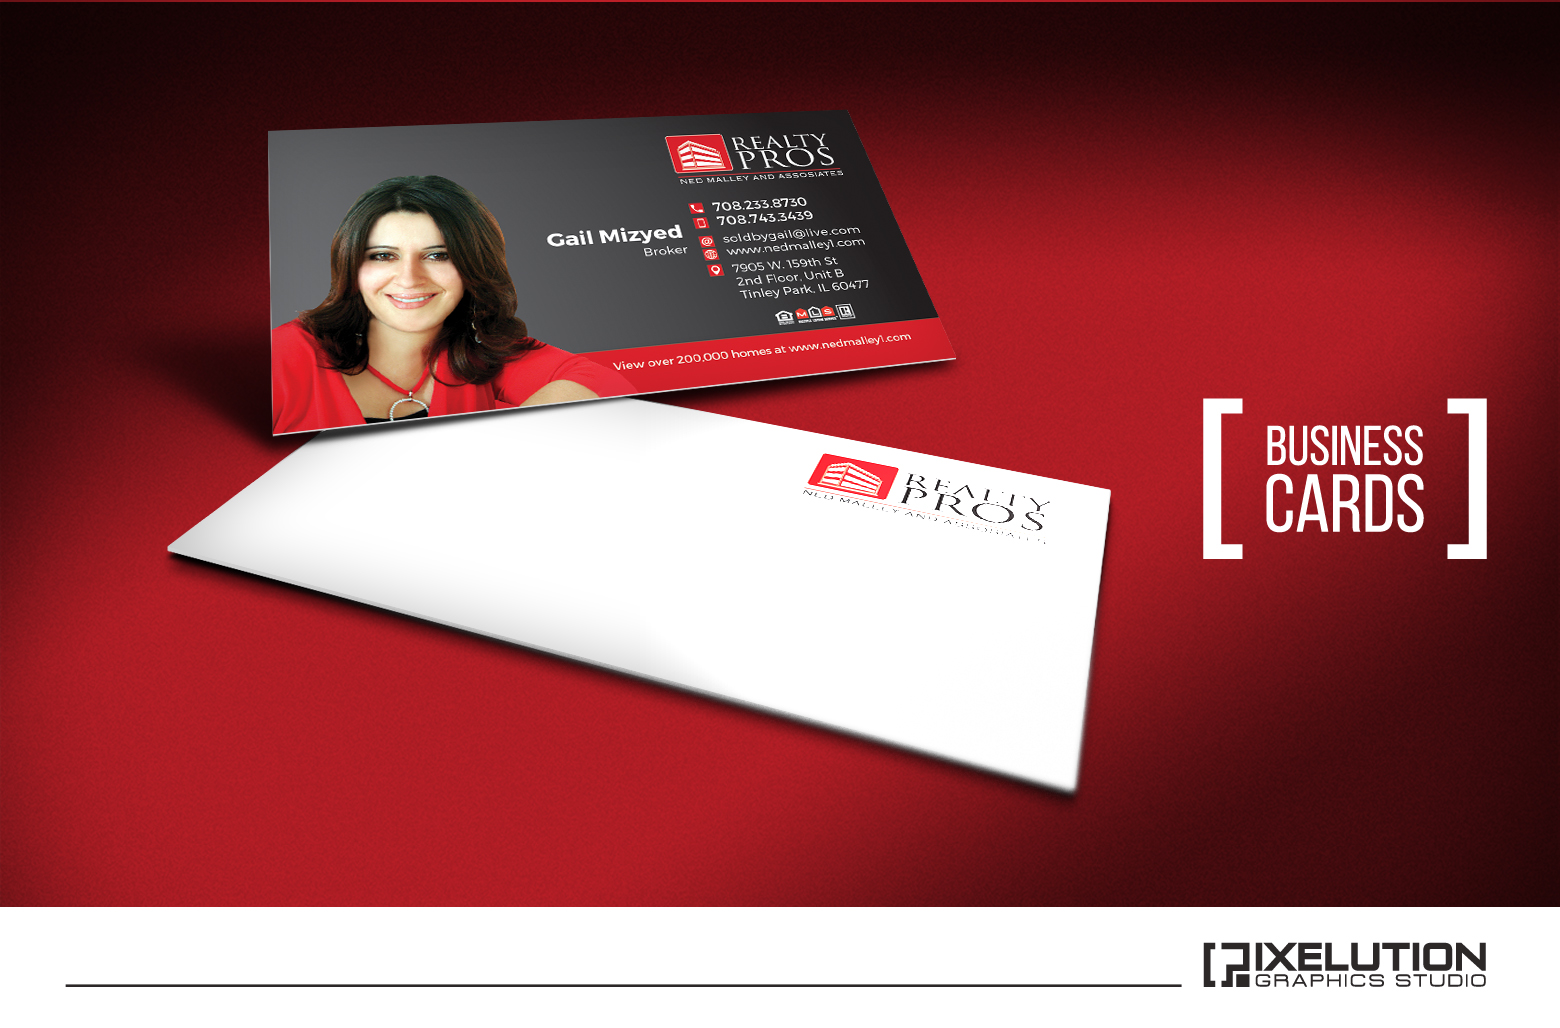 Pixelution graphics realty pros real estate read more business cards reheart Choice Image